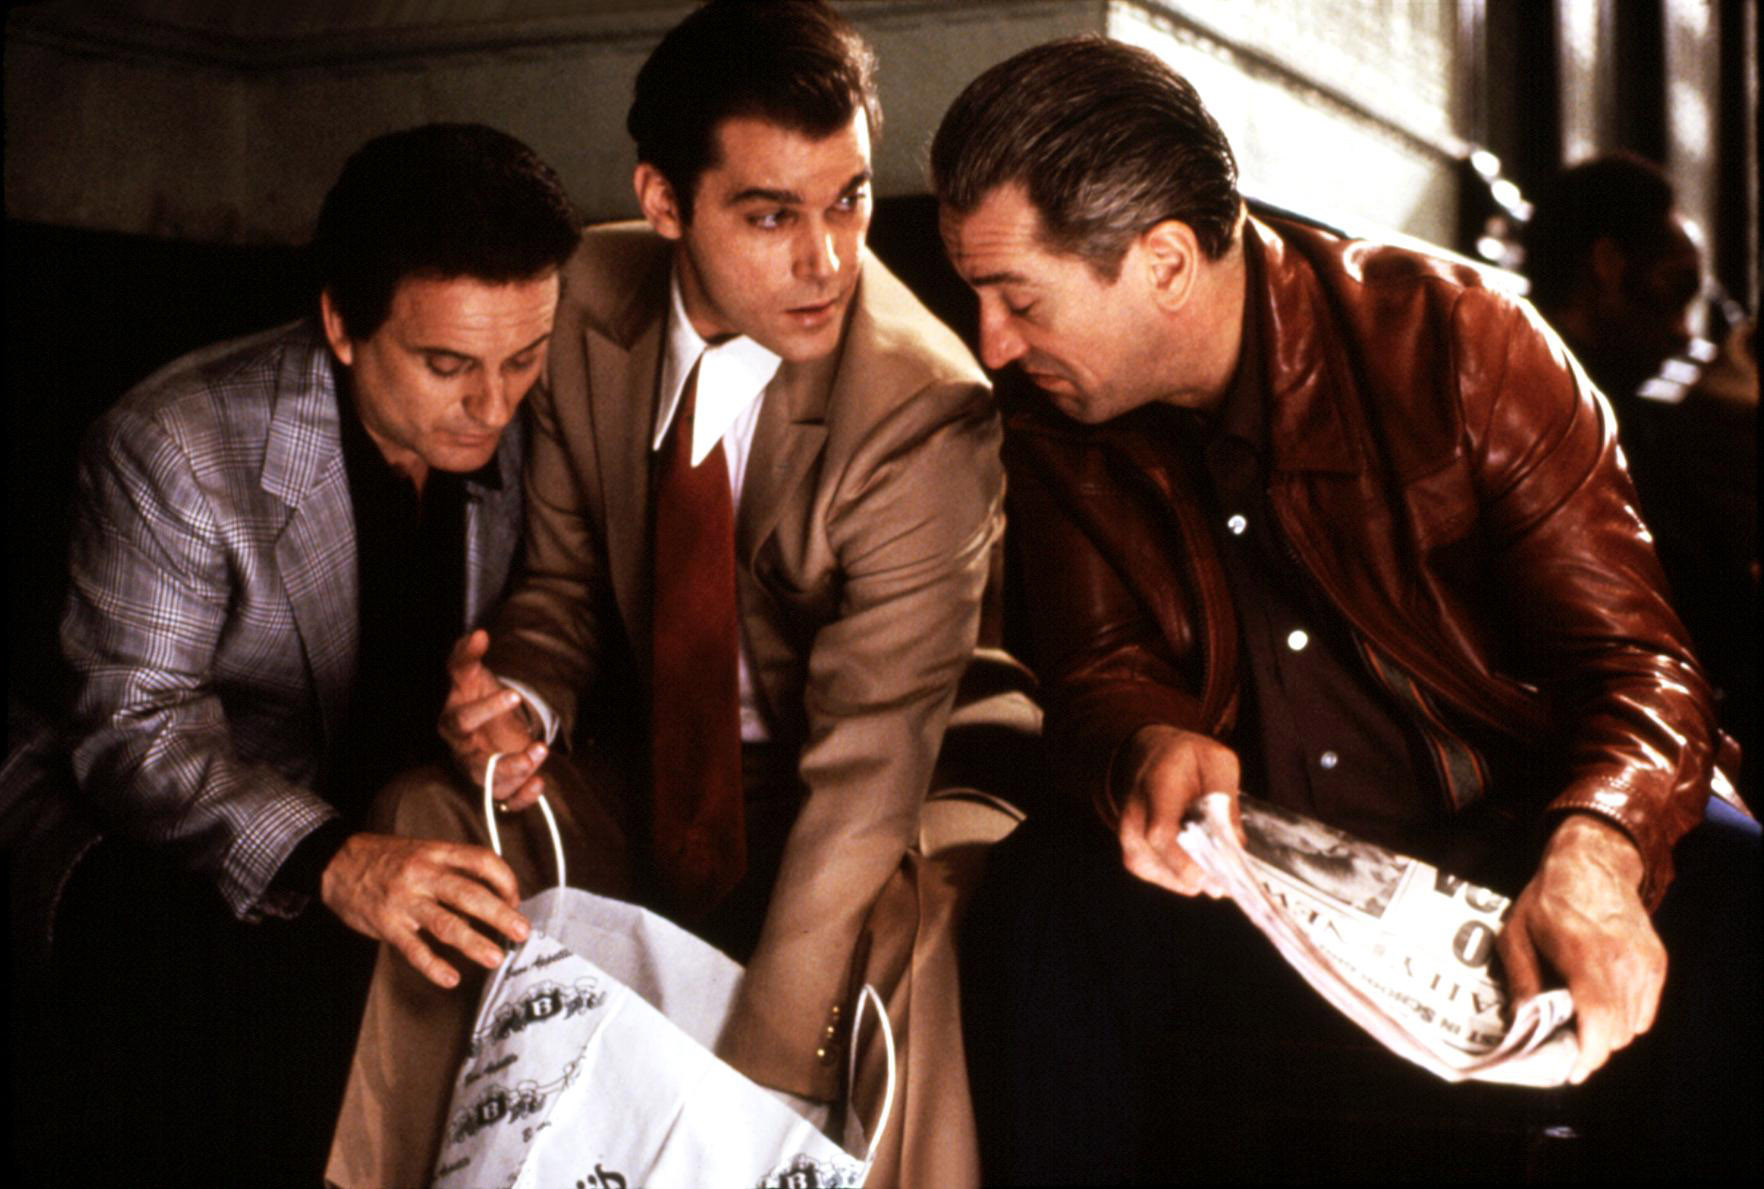 Goodfellas love music in the movie